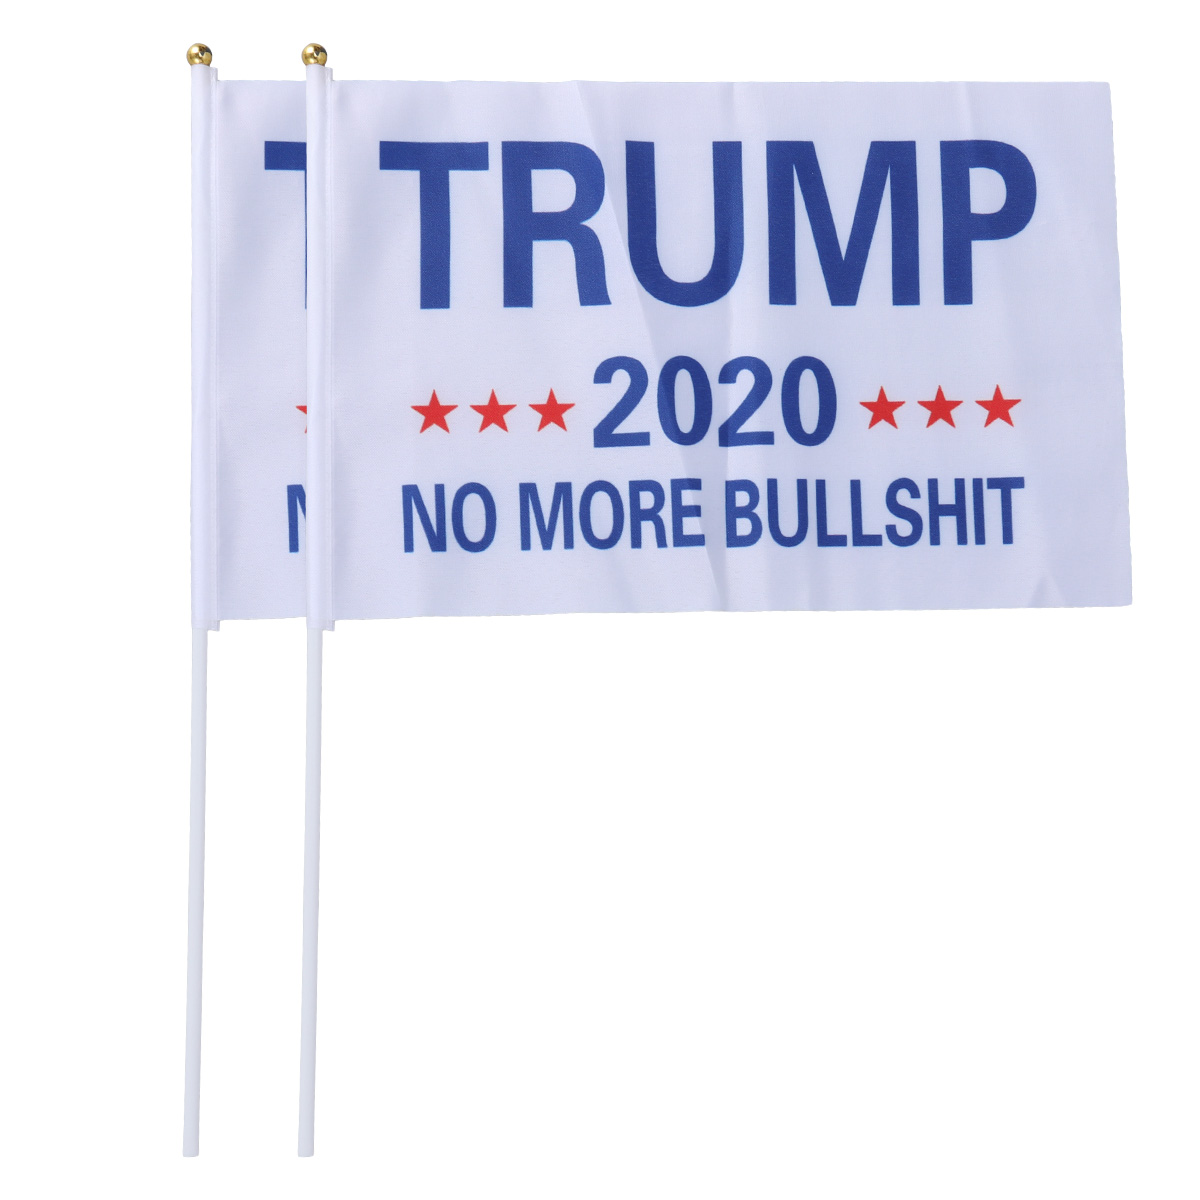 Trump 2020 No More Bullshit 10 pack Stick Flags